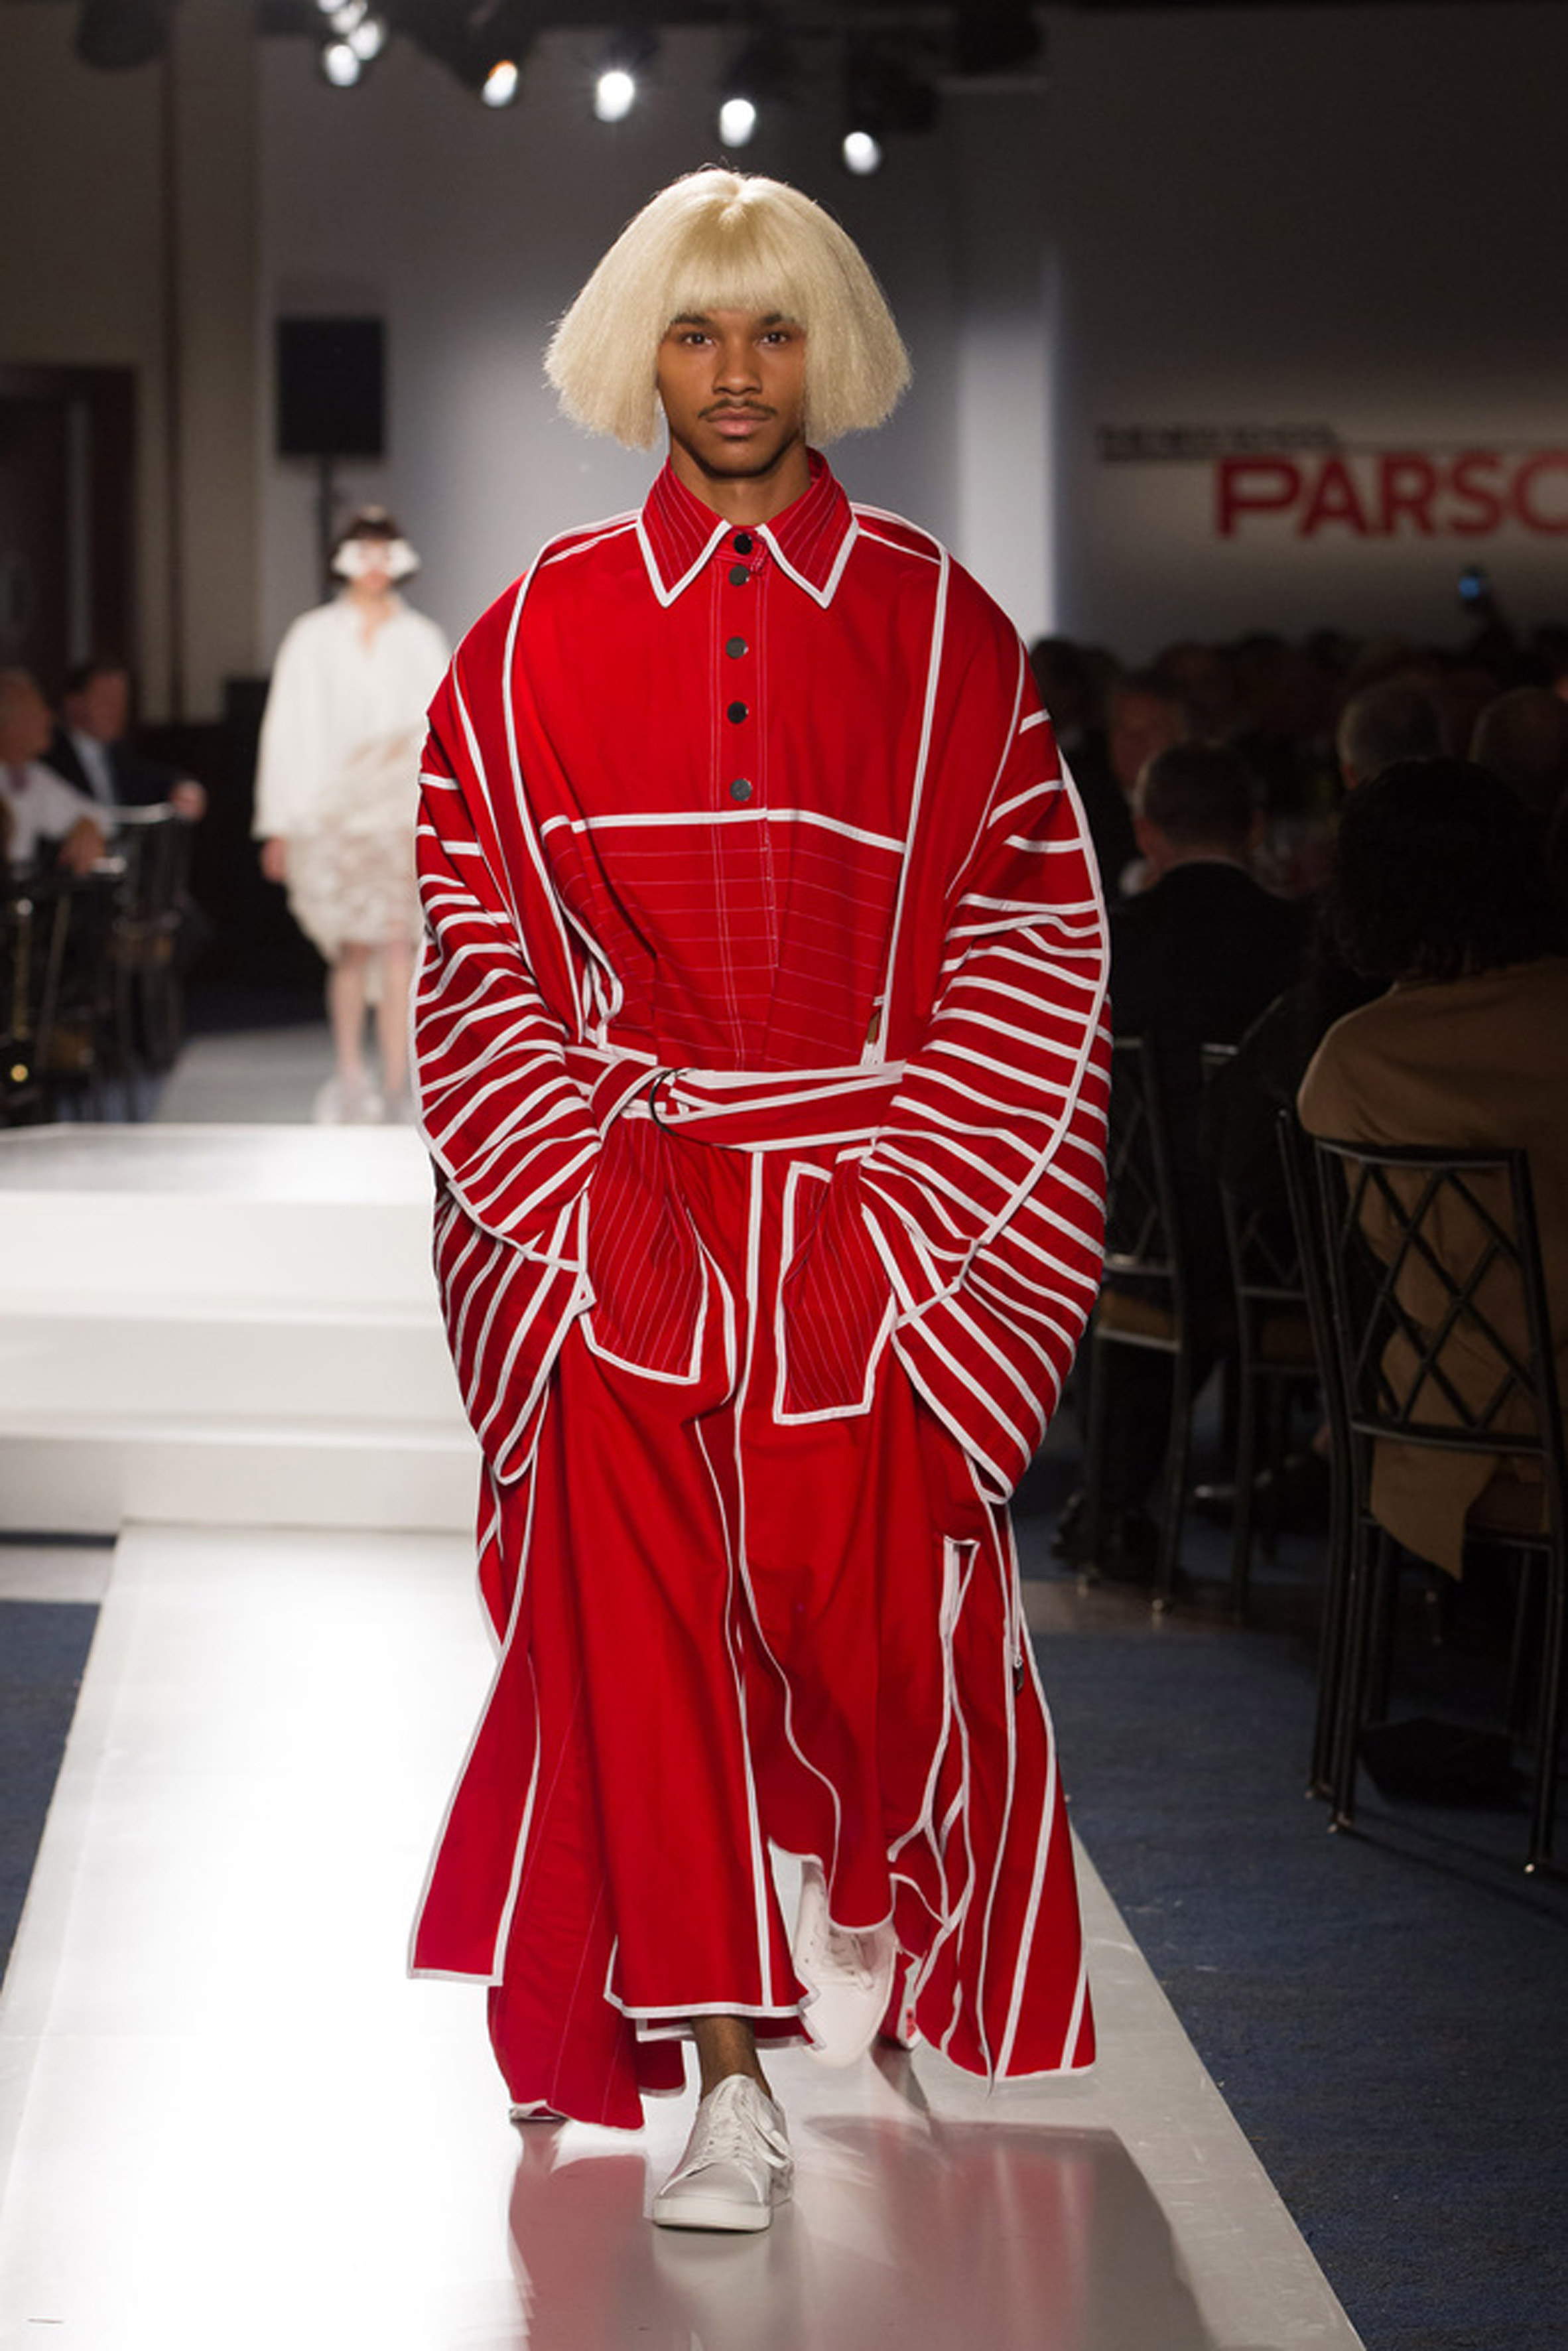 Six standout collections from Parsons 2017 graduate fashion show